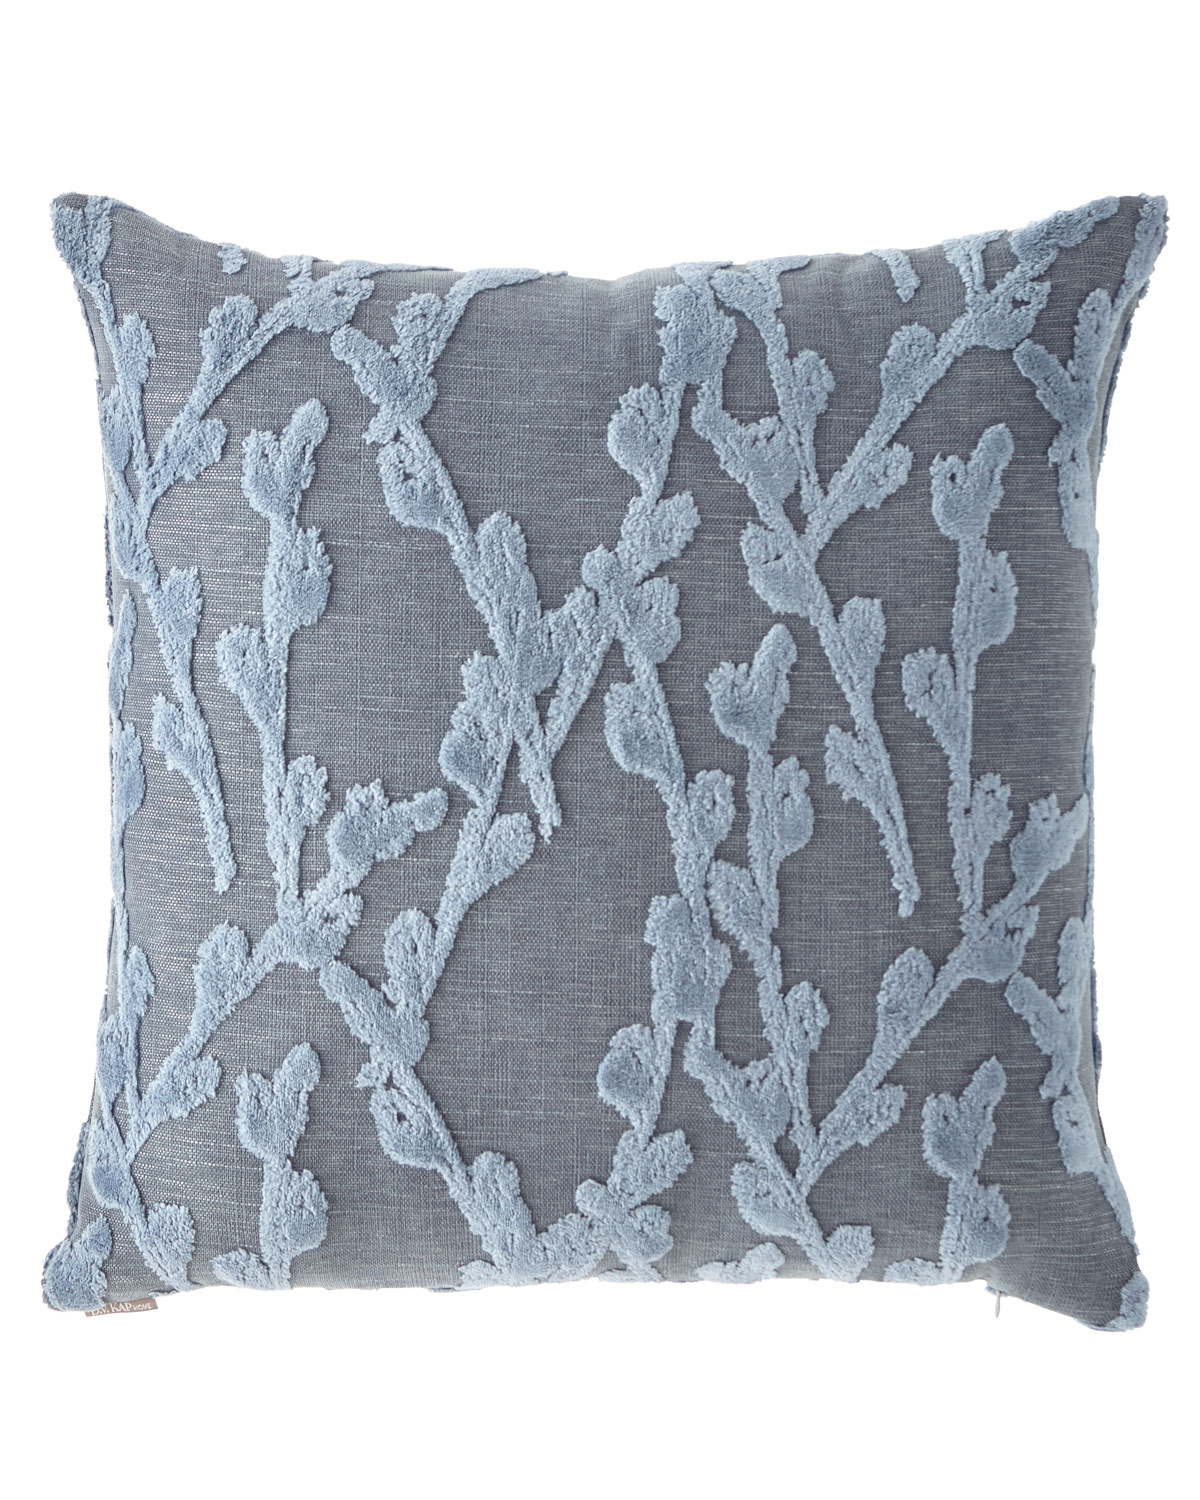 D.V. Kap Home Fortuna Pillow